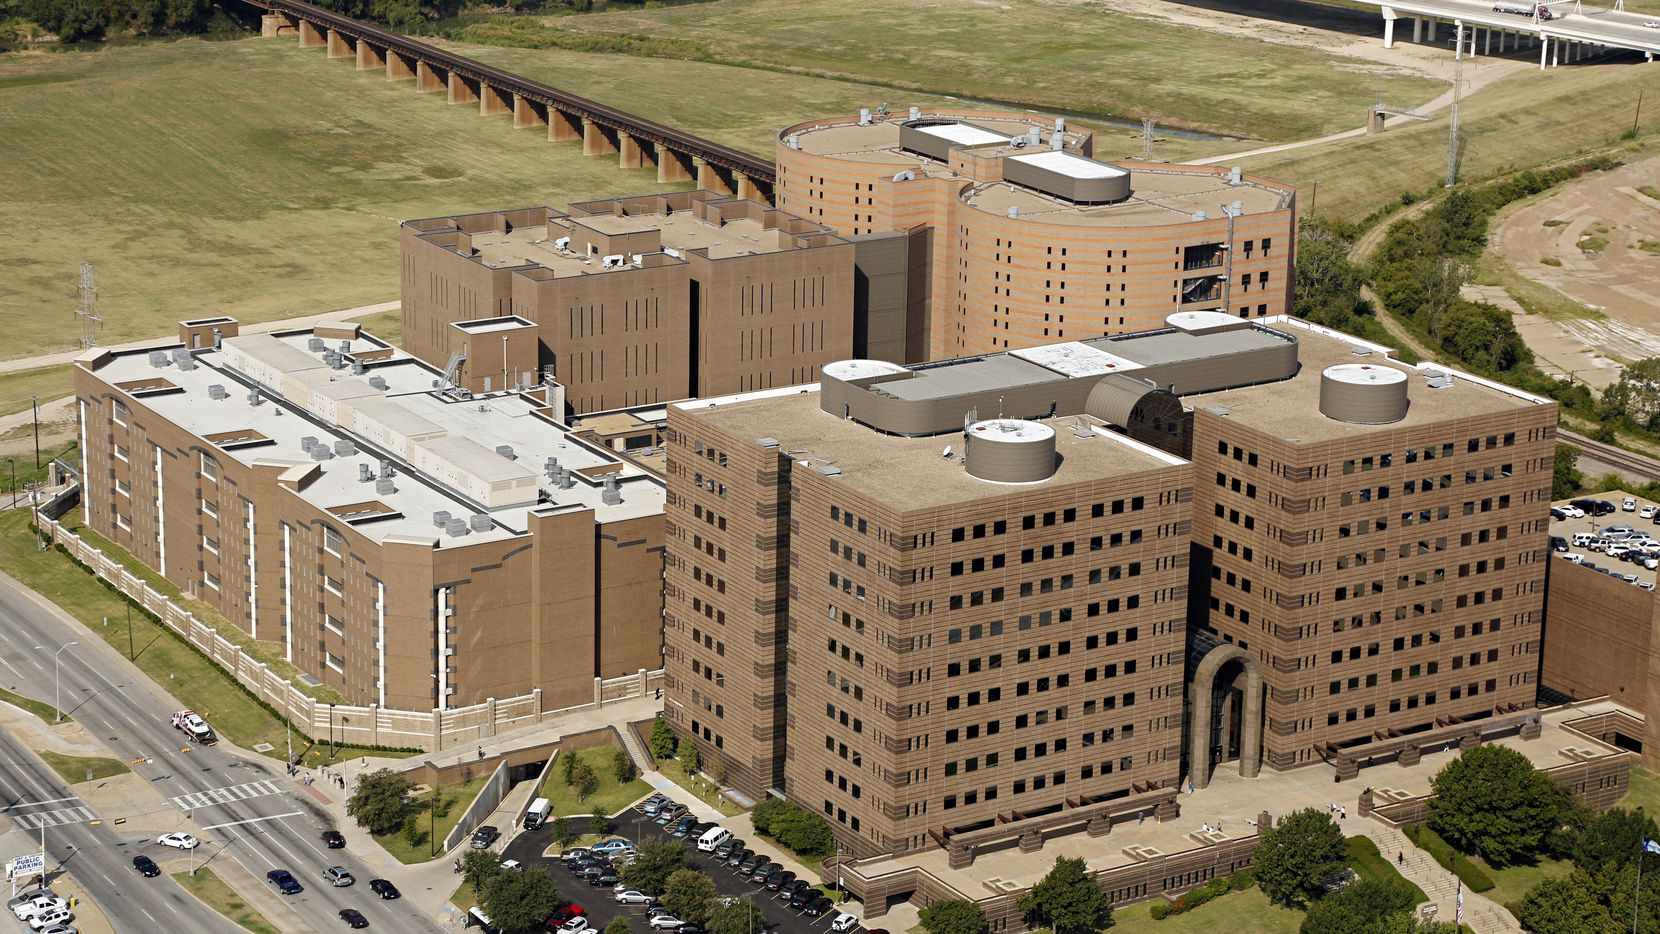 Aerial photograph of the Lew Sterrett Justice Center - including the Dallas County criminal courts (foreground) and the Dallas County Jail (background) - shot Monday, September 24, 2012 in Dallas. (G.J. McCarthy/The Dallas Morning News)